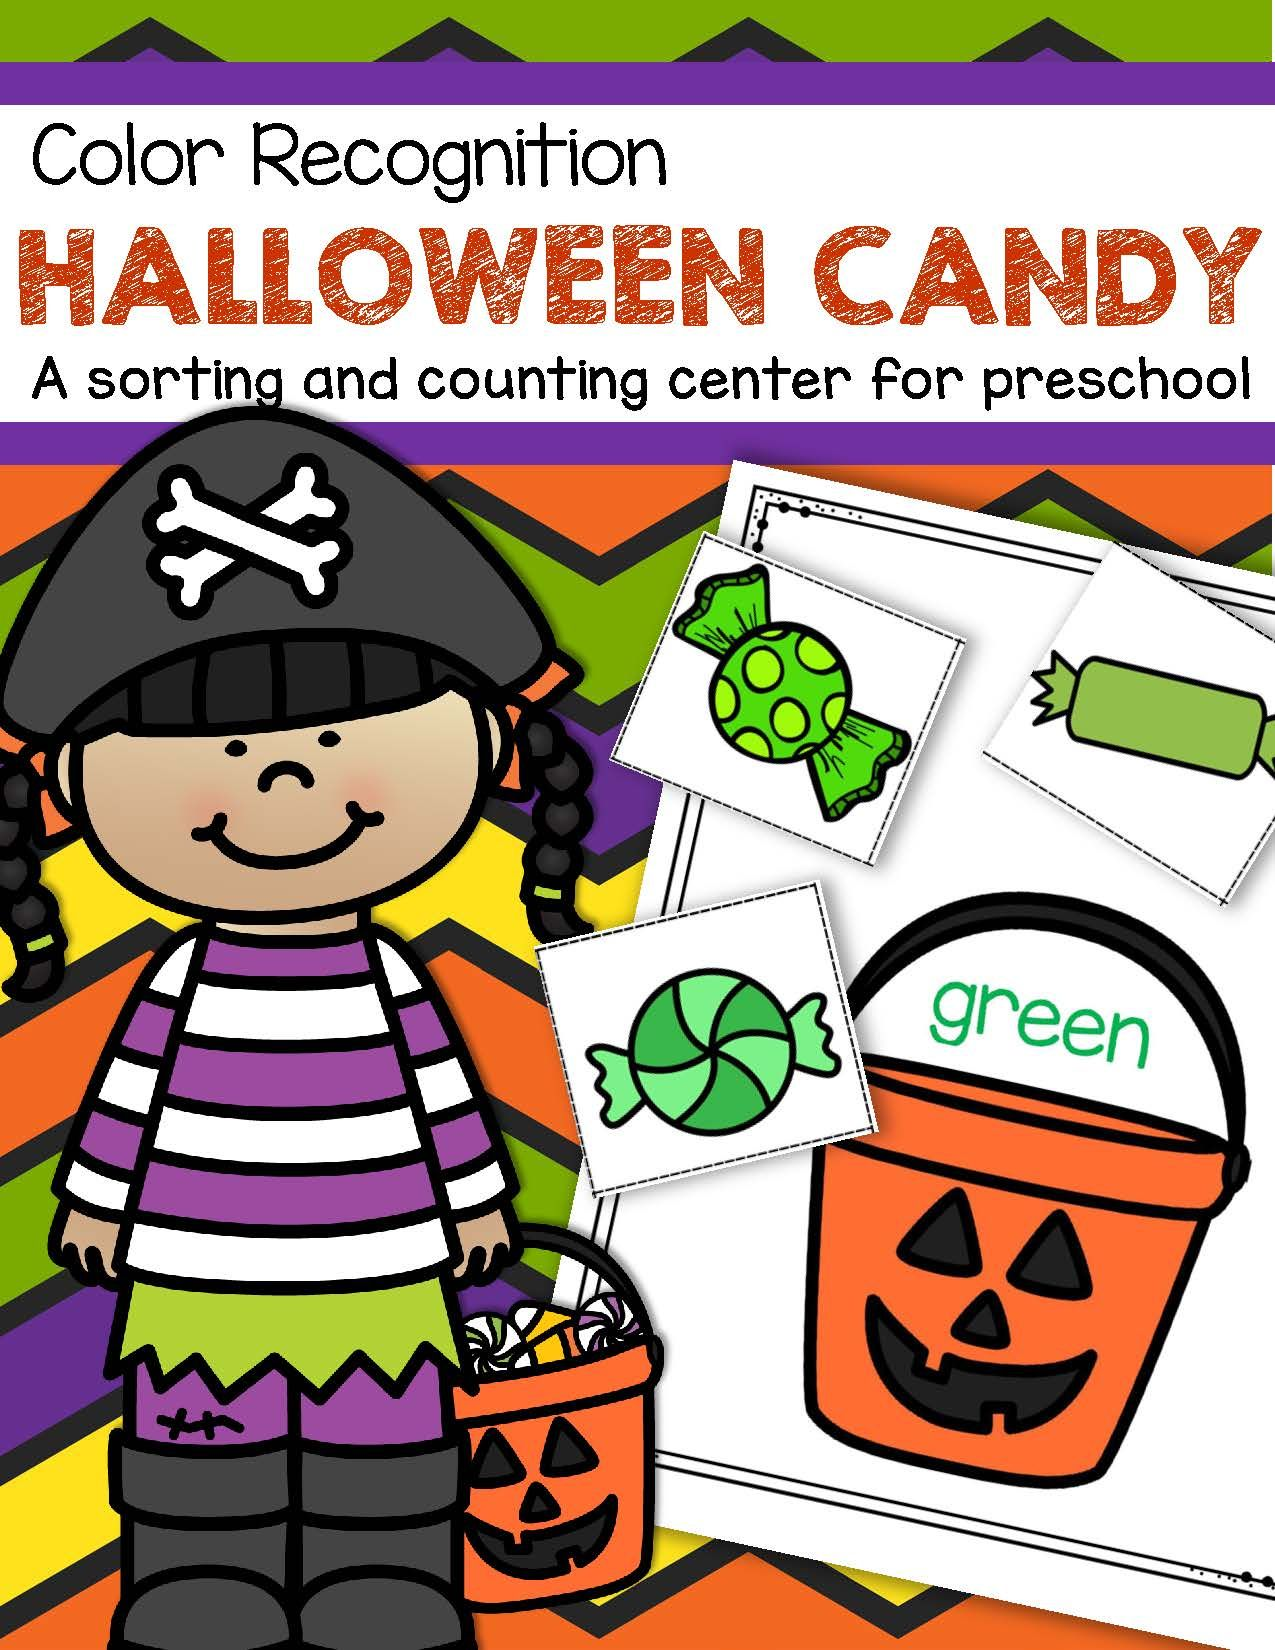 Halloween Candy Color Sorting Center For Preschool And